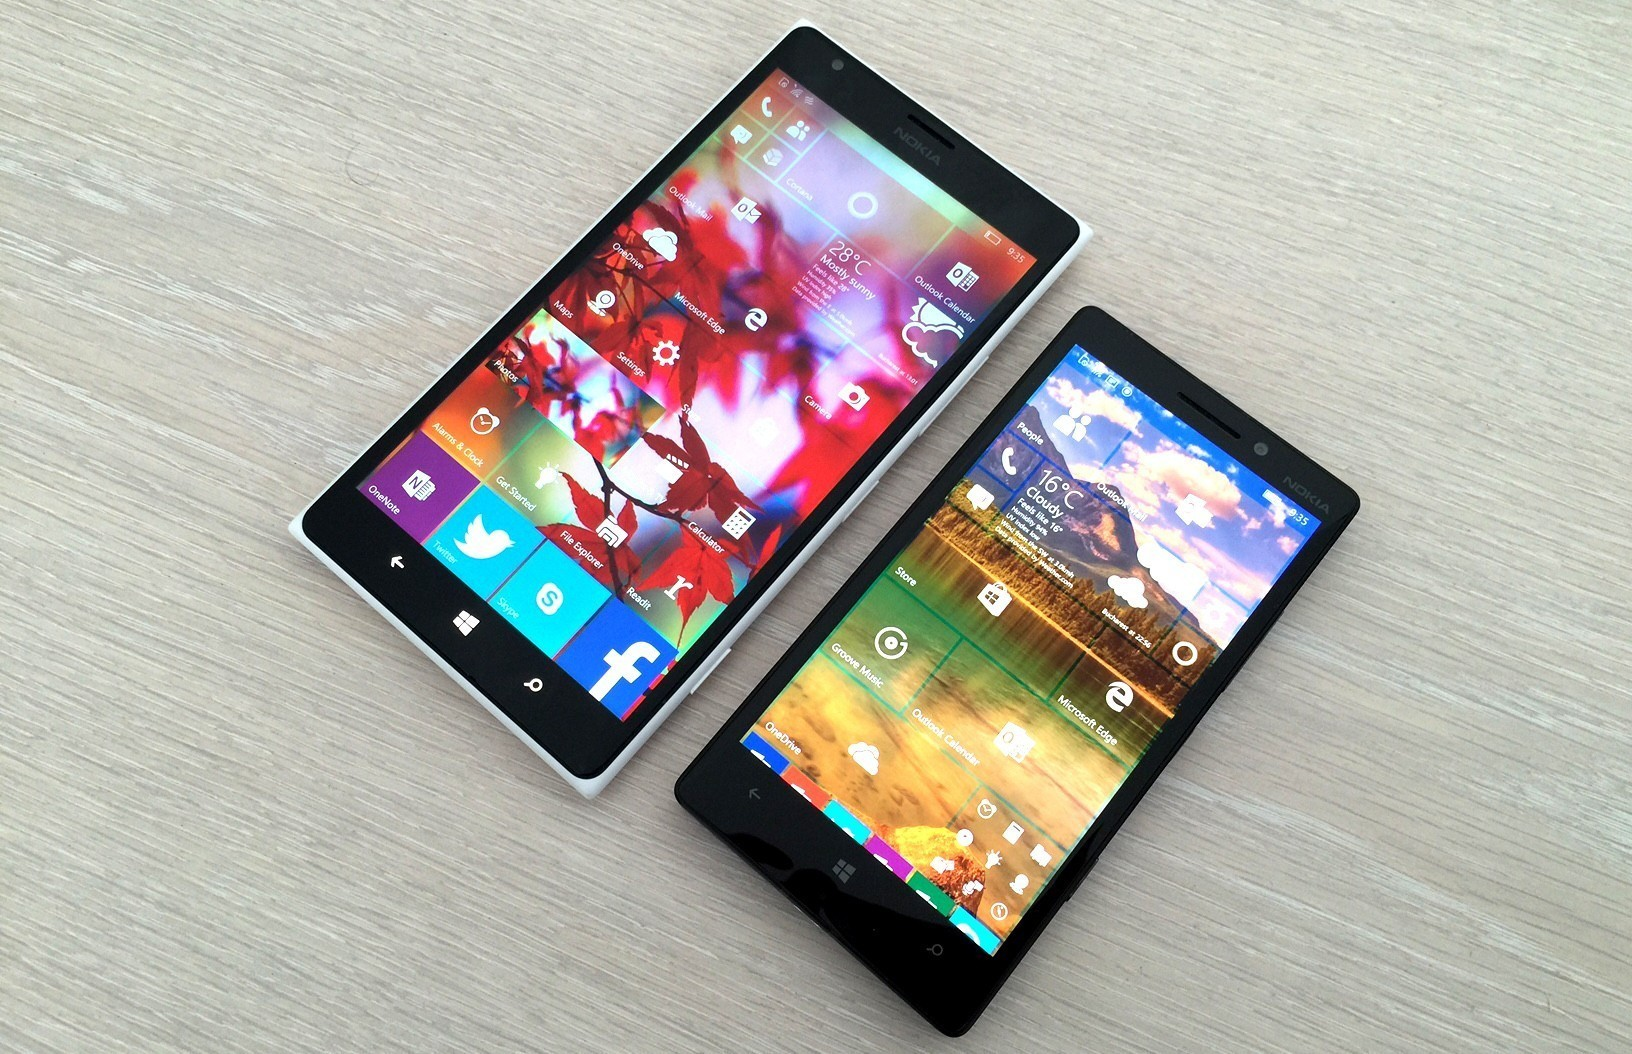 Microsoft Getting Ready for Windows 10 Mobile Launch with